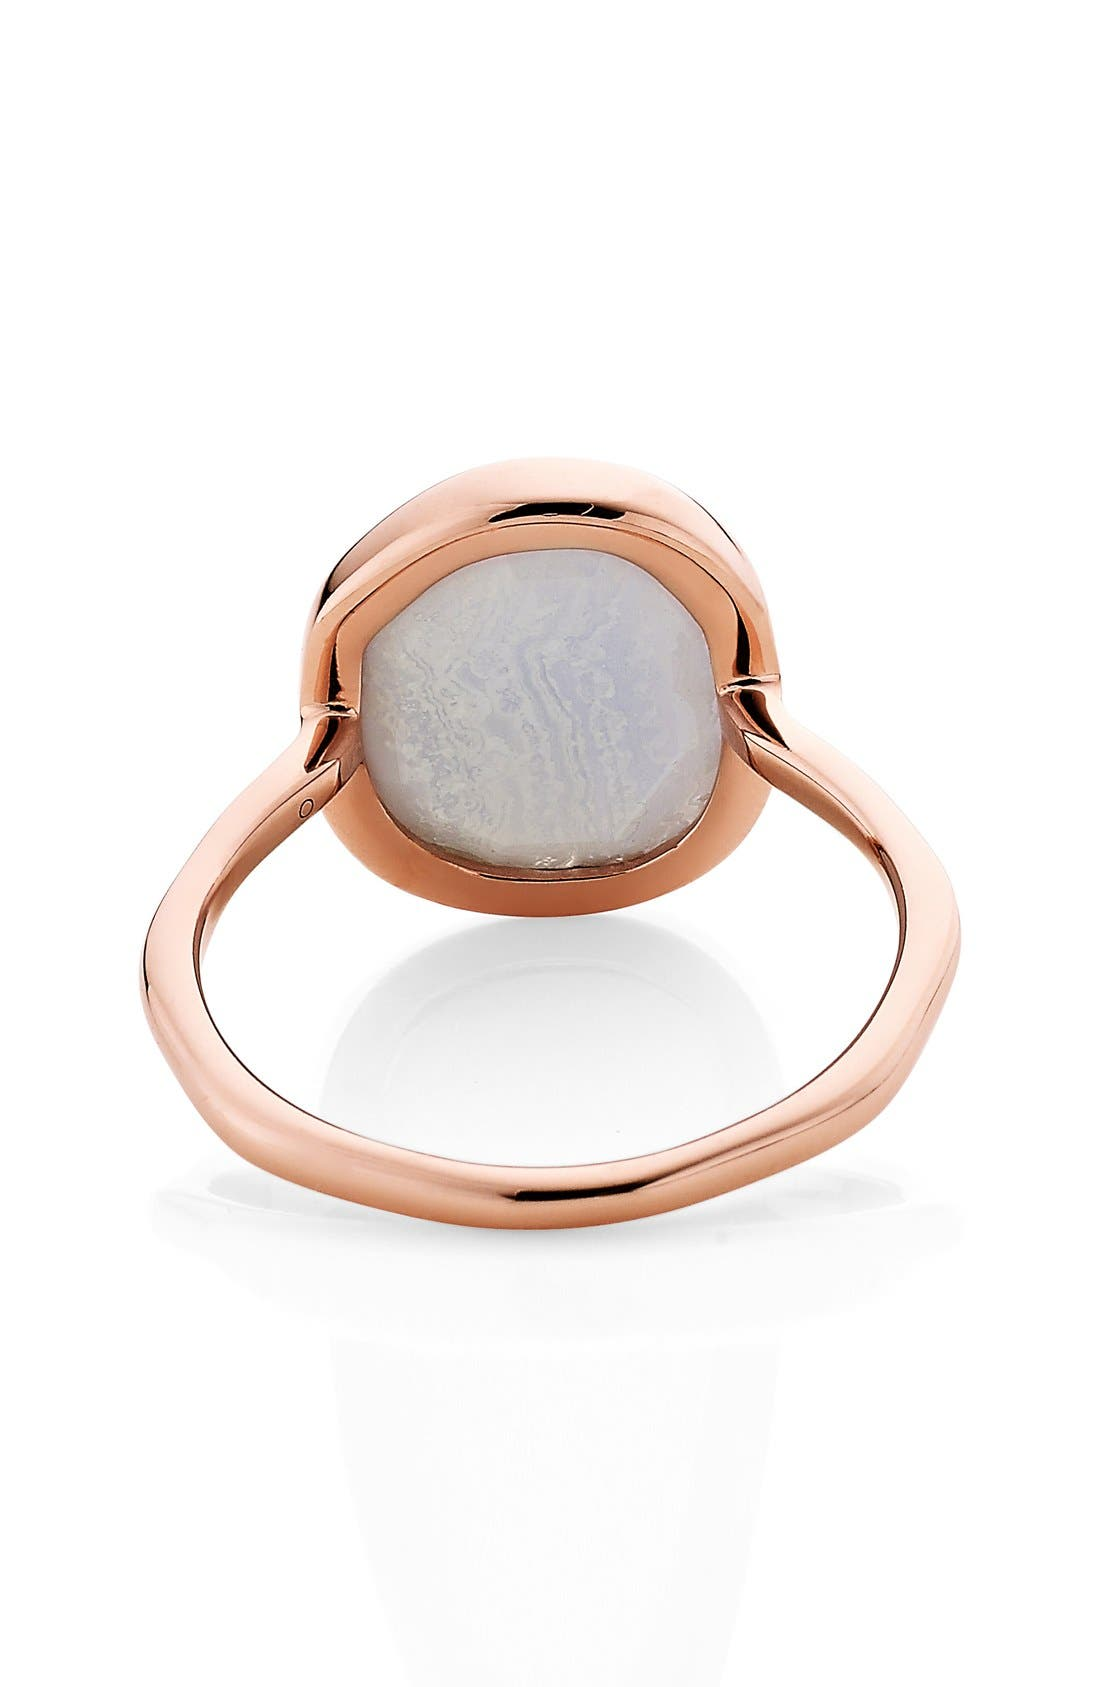 Alternate Image 3  - Monica Vinader 'Siren' Medium Semiprecious Stone Stacking Ring